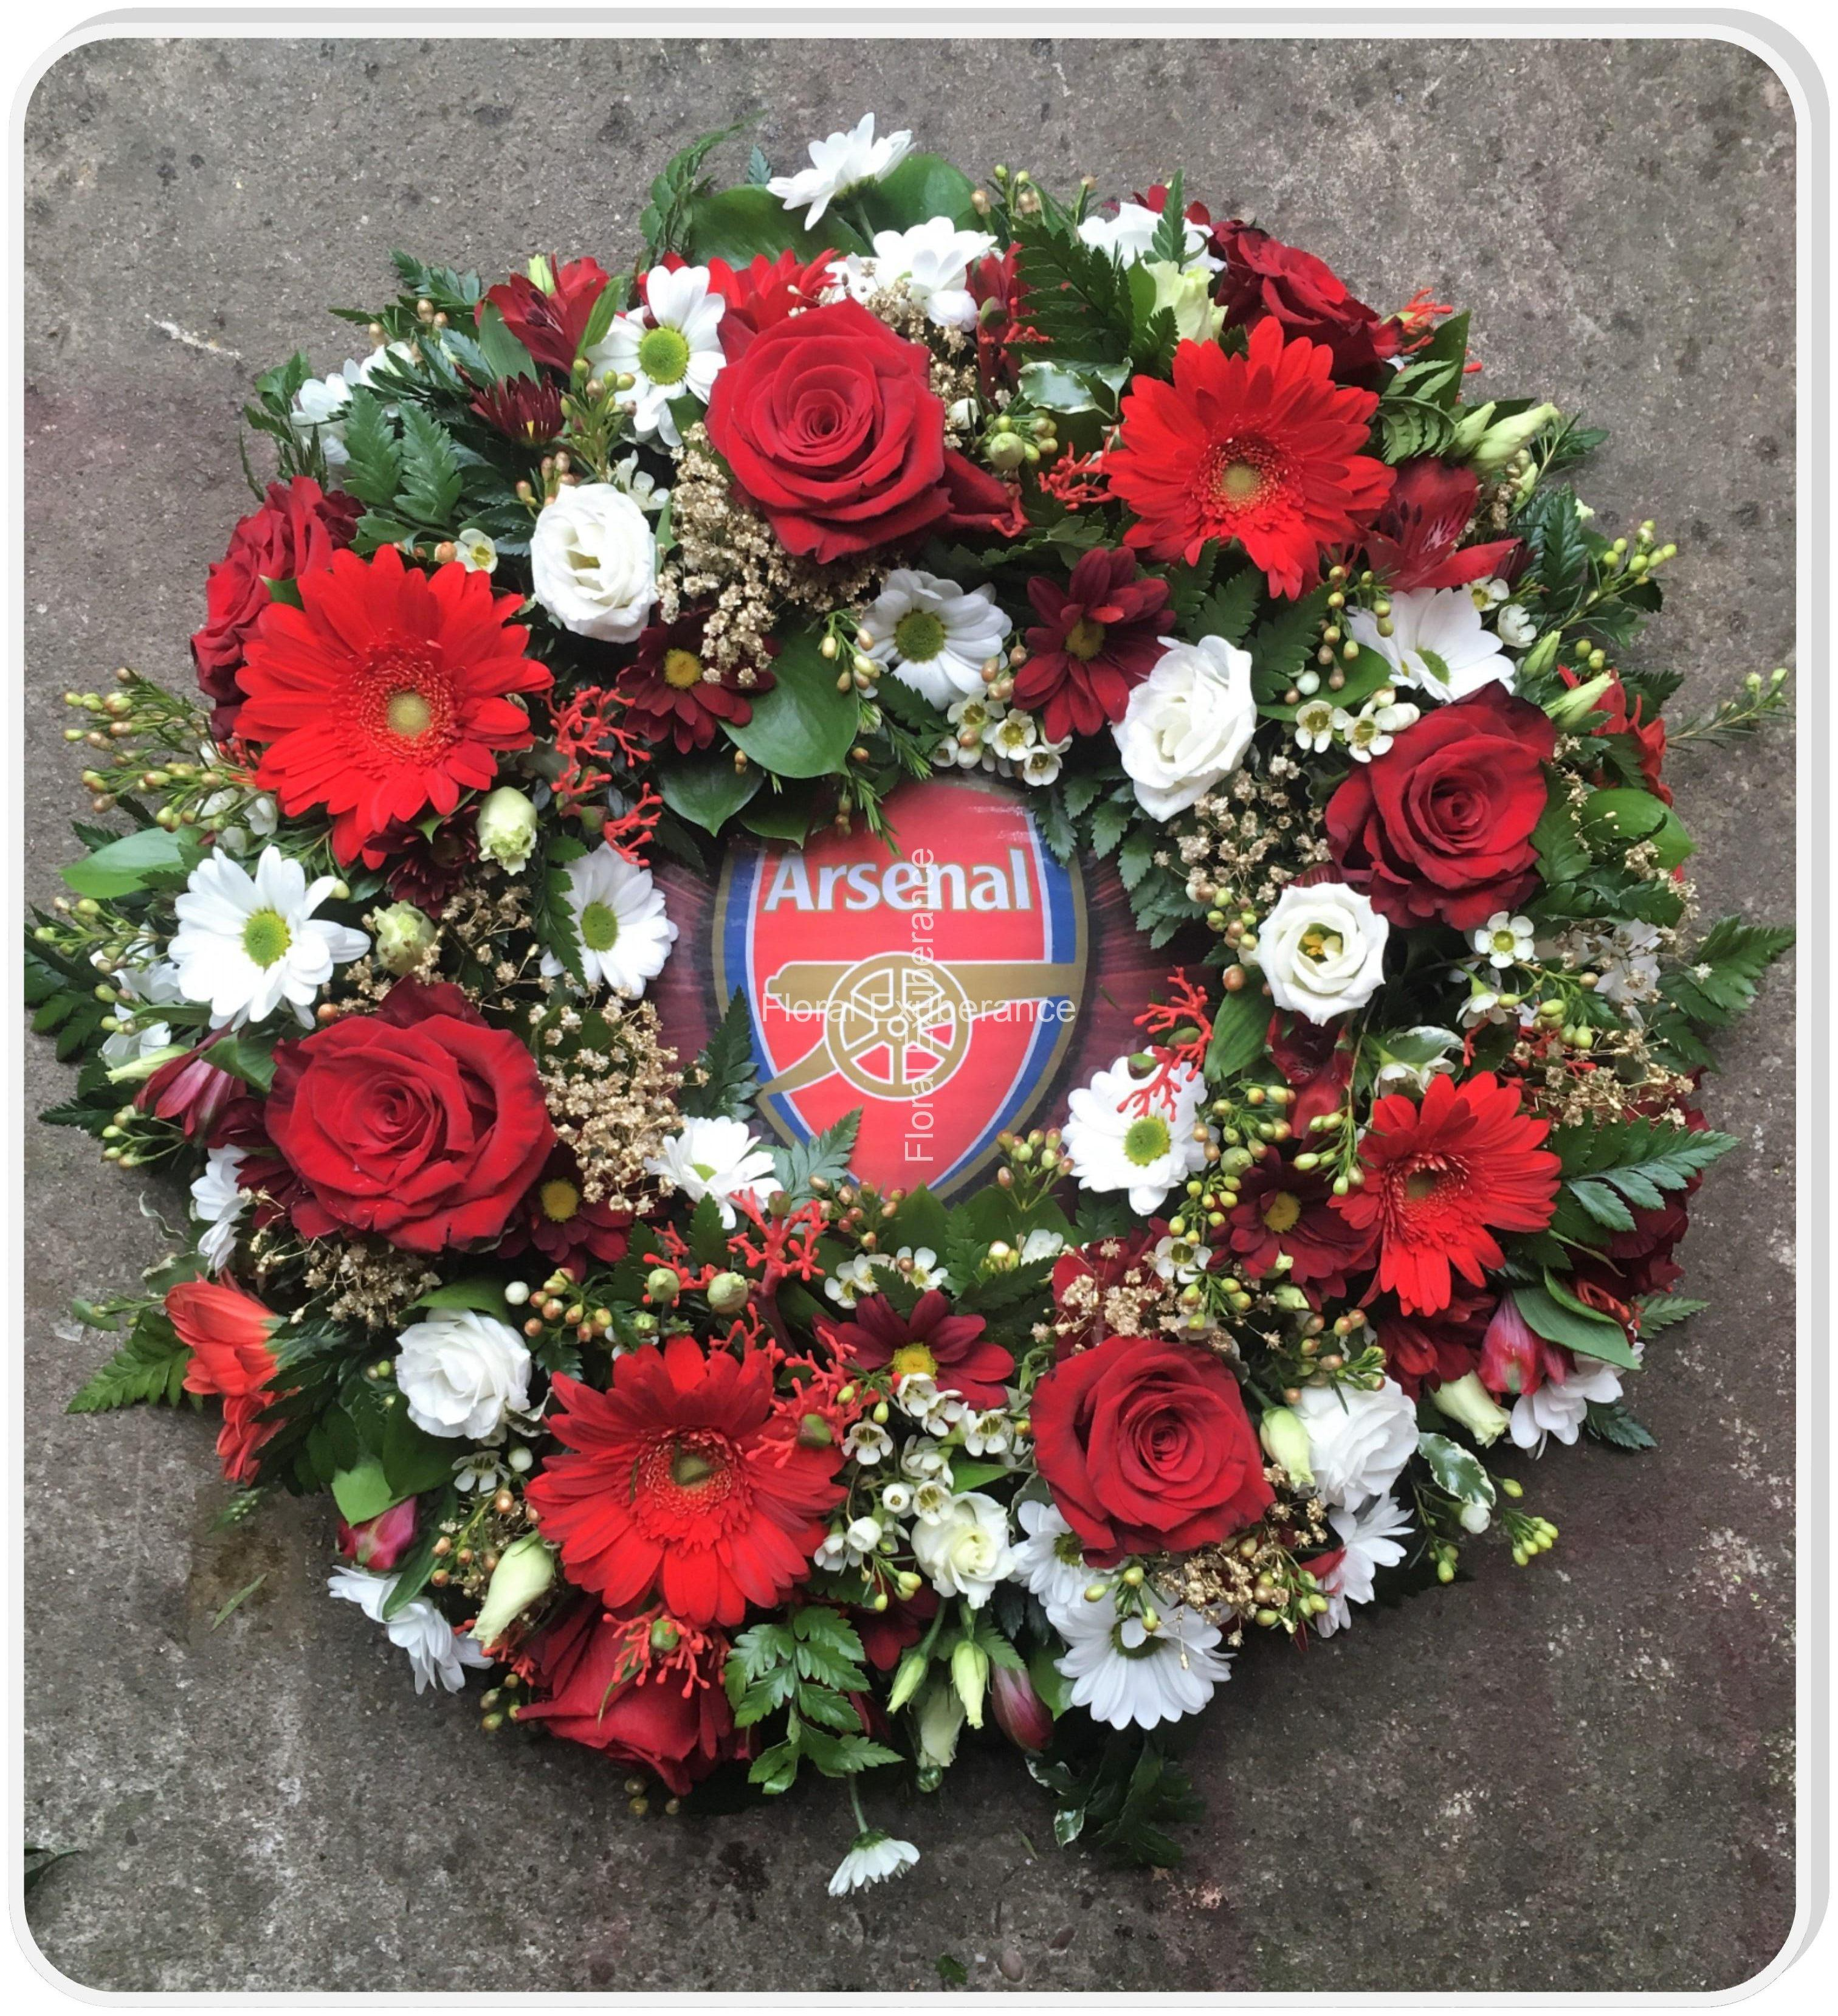 Arsenal funeral flower wreath floral exuberance arsenal funeral flower wreath izmirmasajfo Images